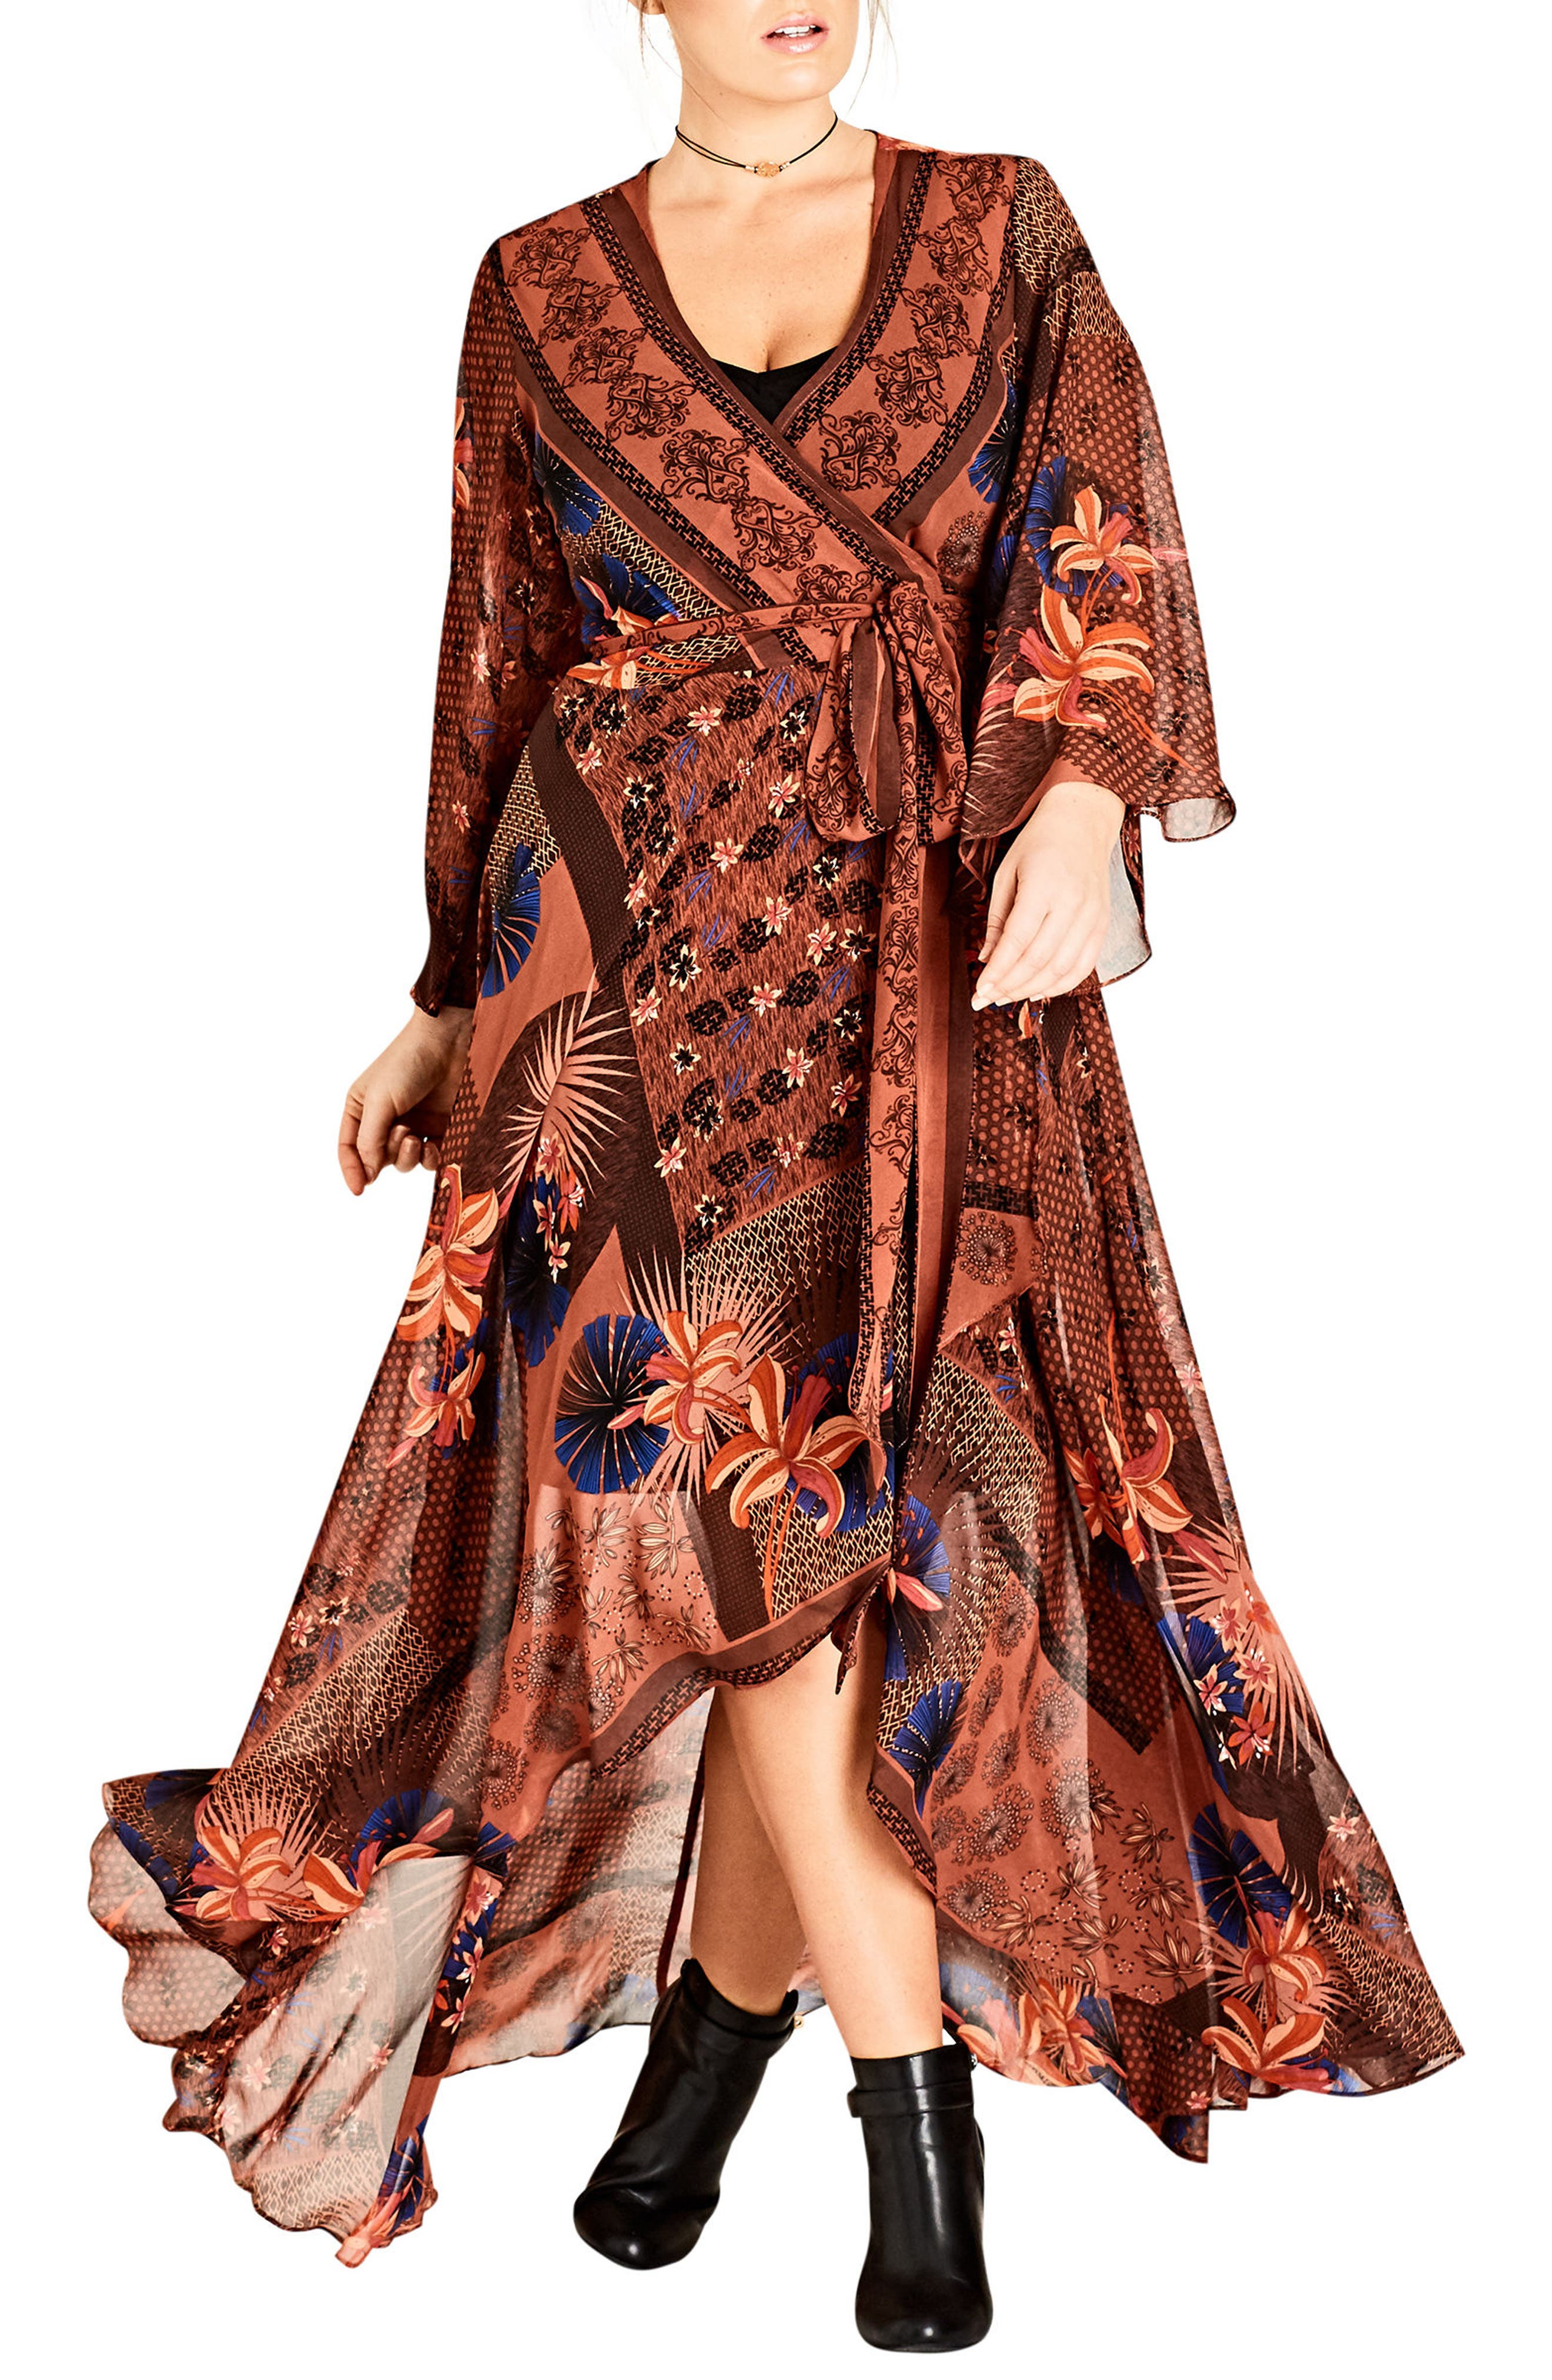 Alternate Image 1 Selected - City Chic Patchwork Print Wrap Maxi Dress (Plus Size)